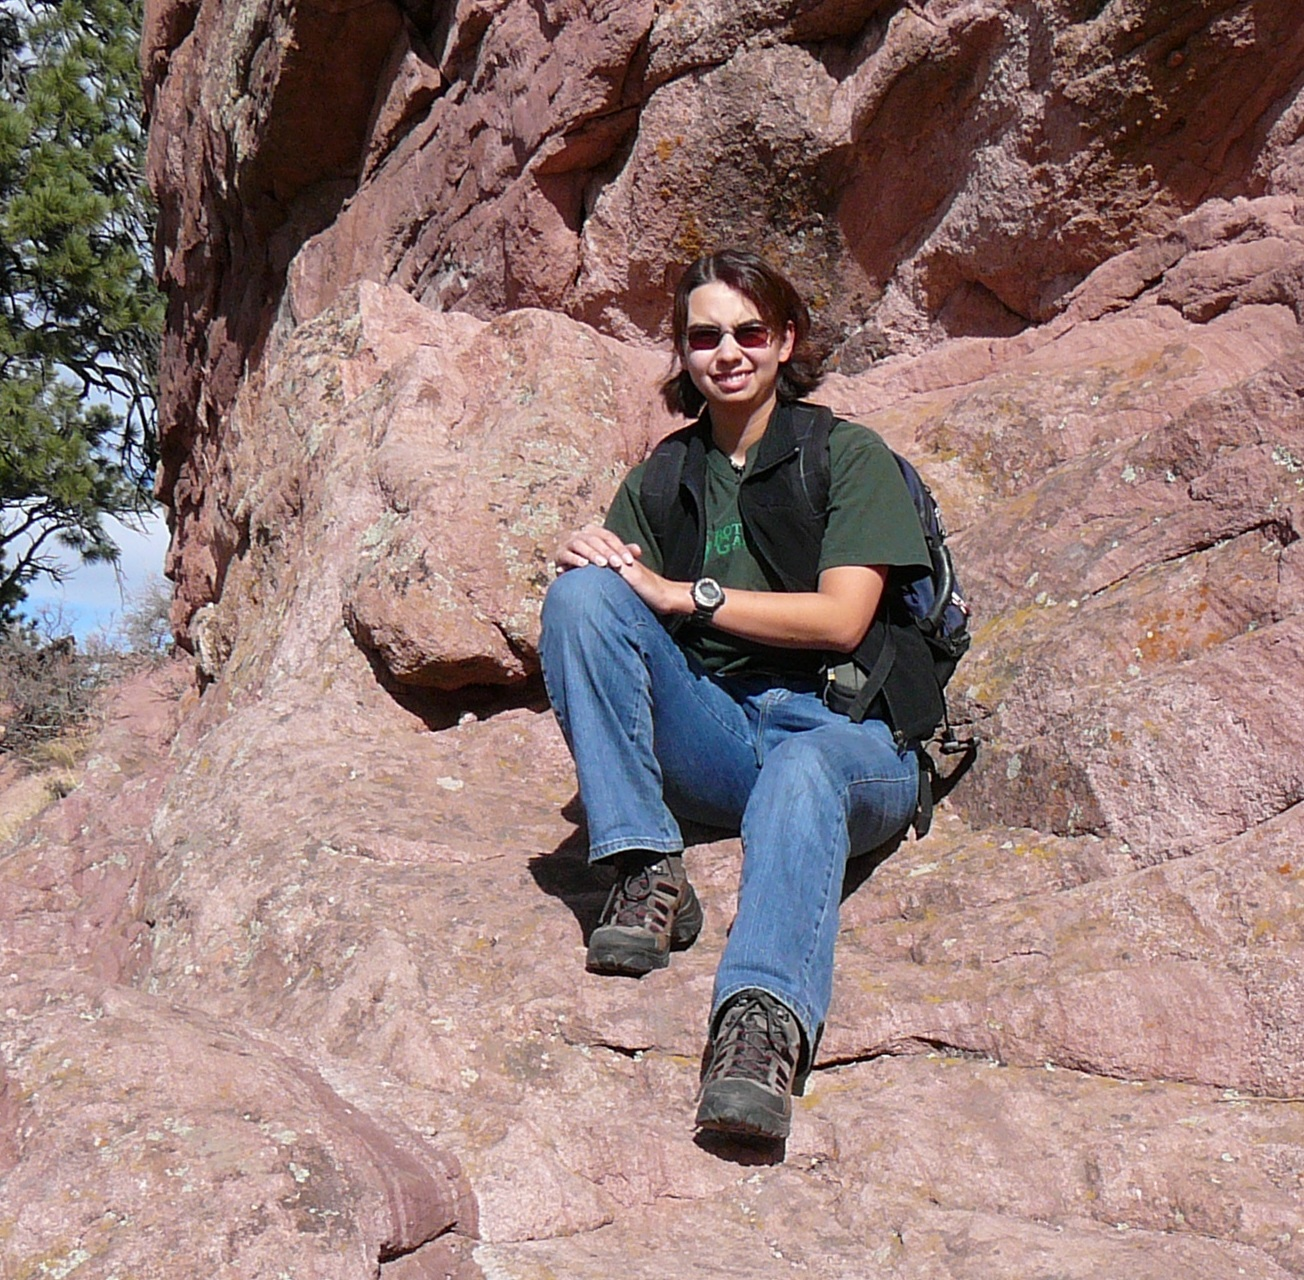 Robin Tanamachi hiking in Boulder Canyon in 2008